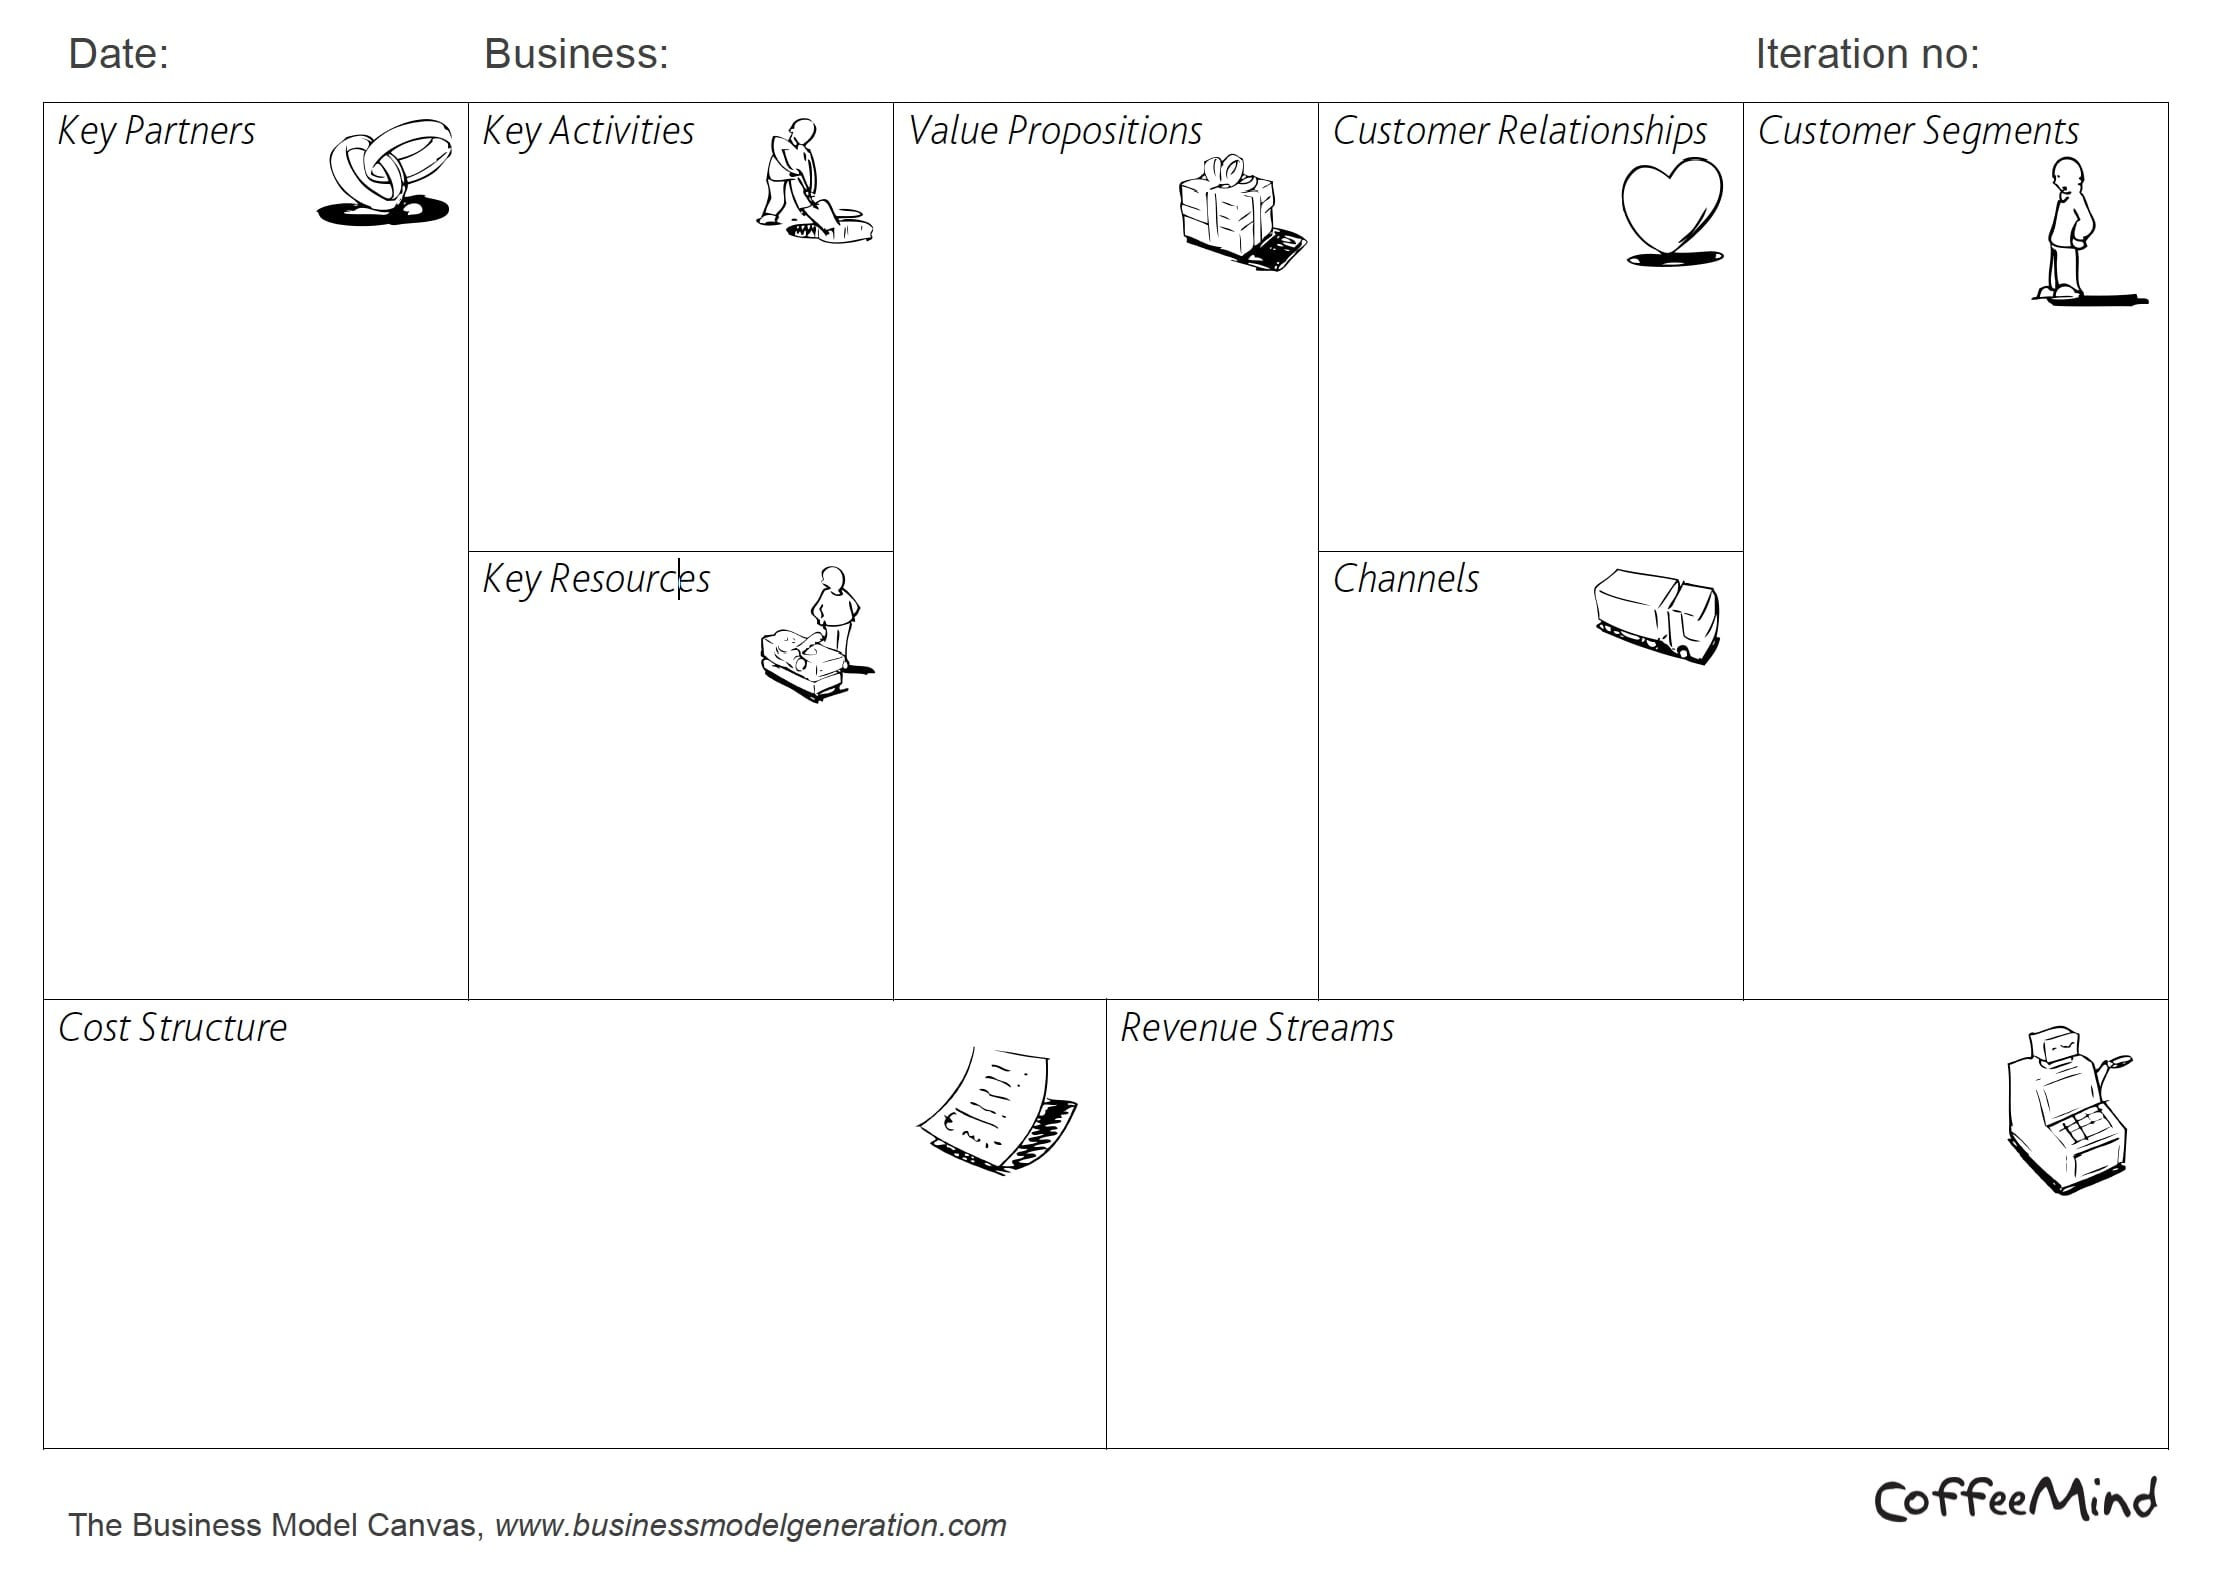 Business_Model_Canvas_CoffeeMind